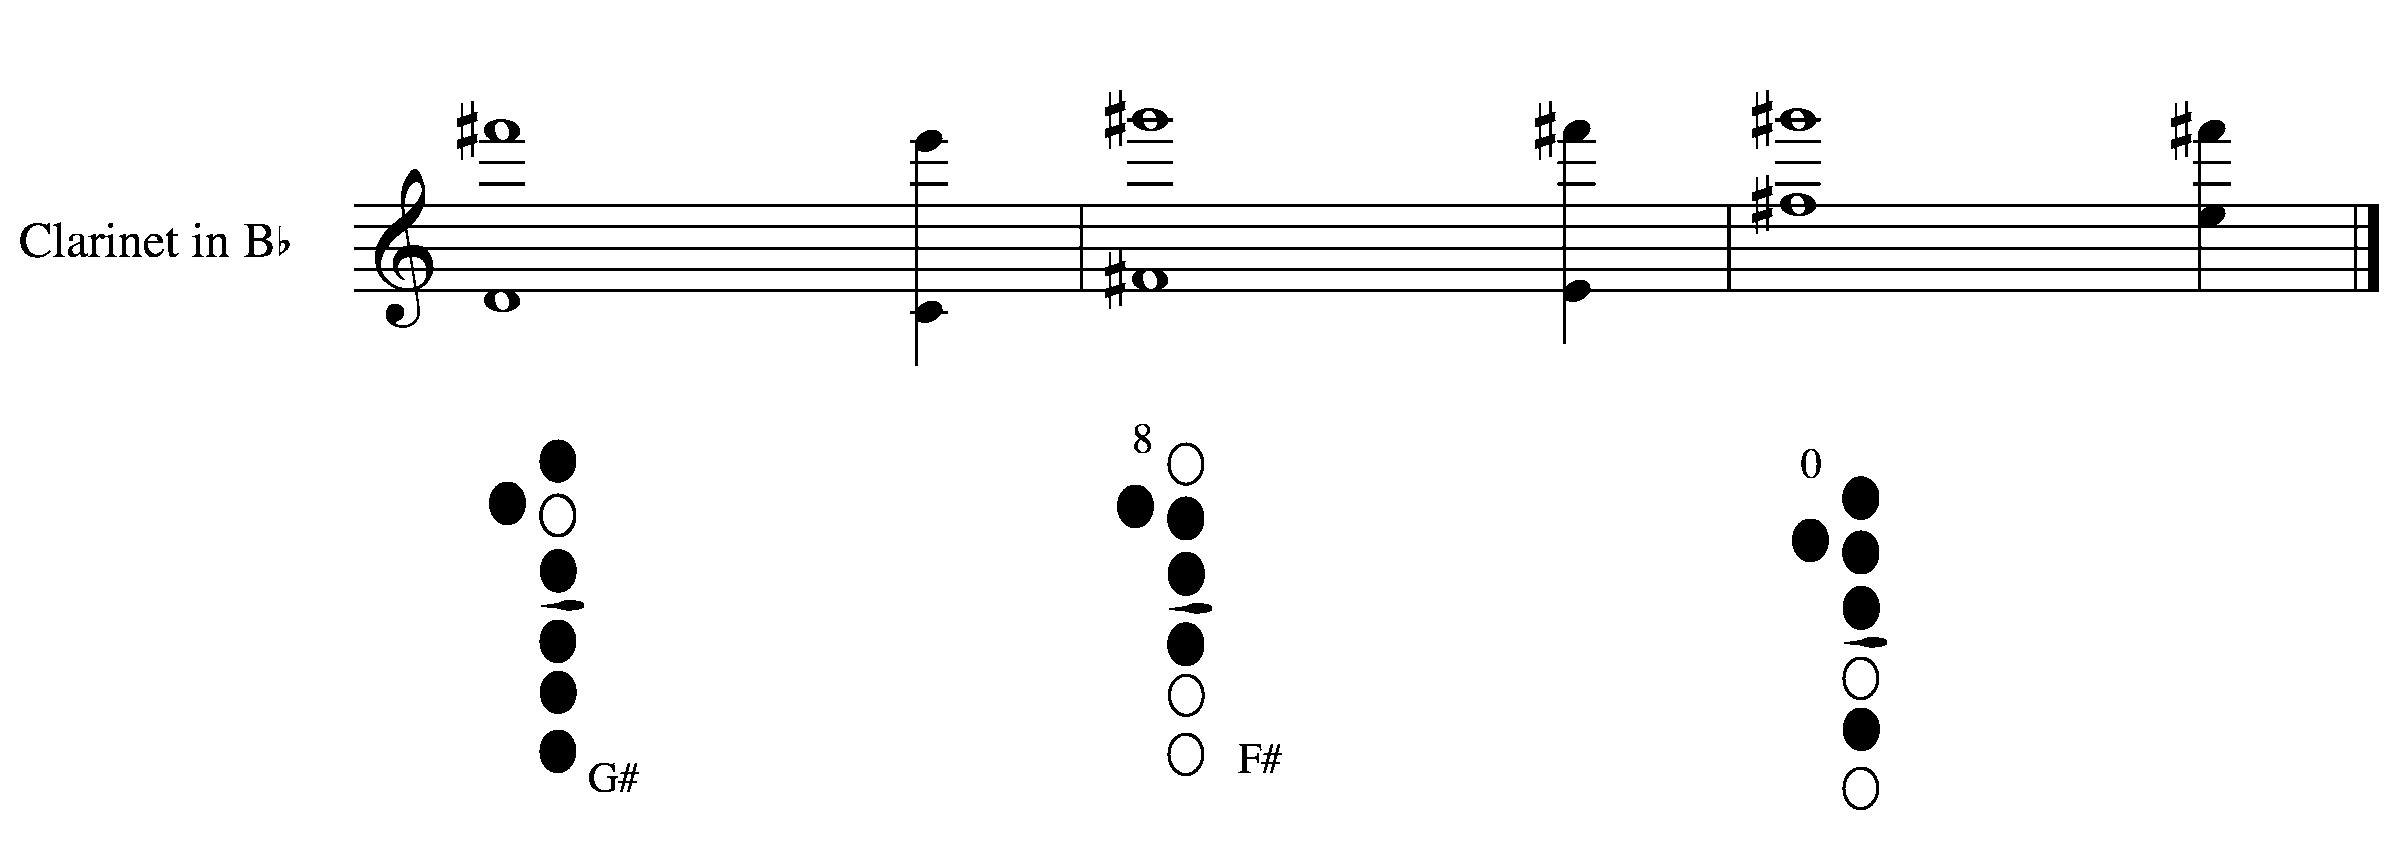 multiphonics and the oboe Abstract this paper explores four aspects of multiphonic sounds as they pertain to the oboe - definition, acoustical properties, notation, and compositional usage.